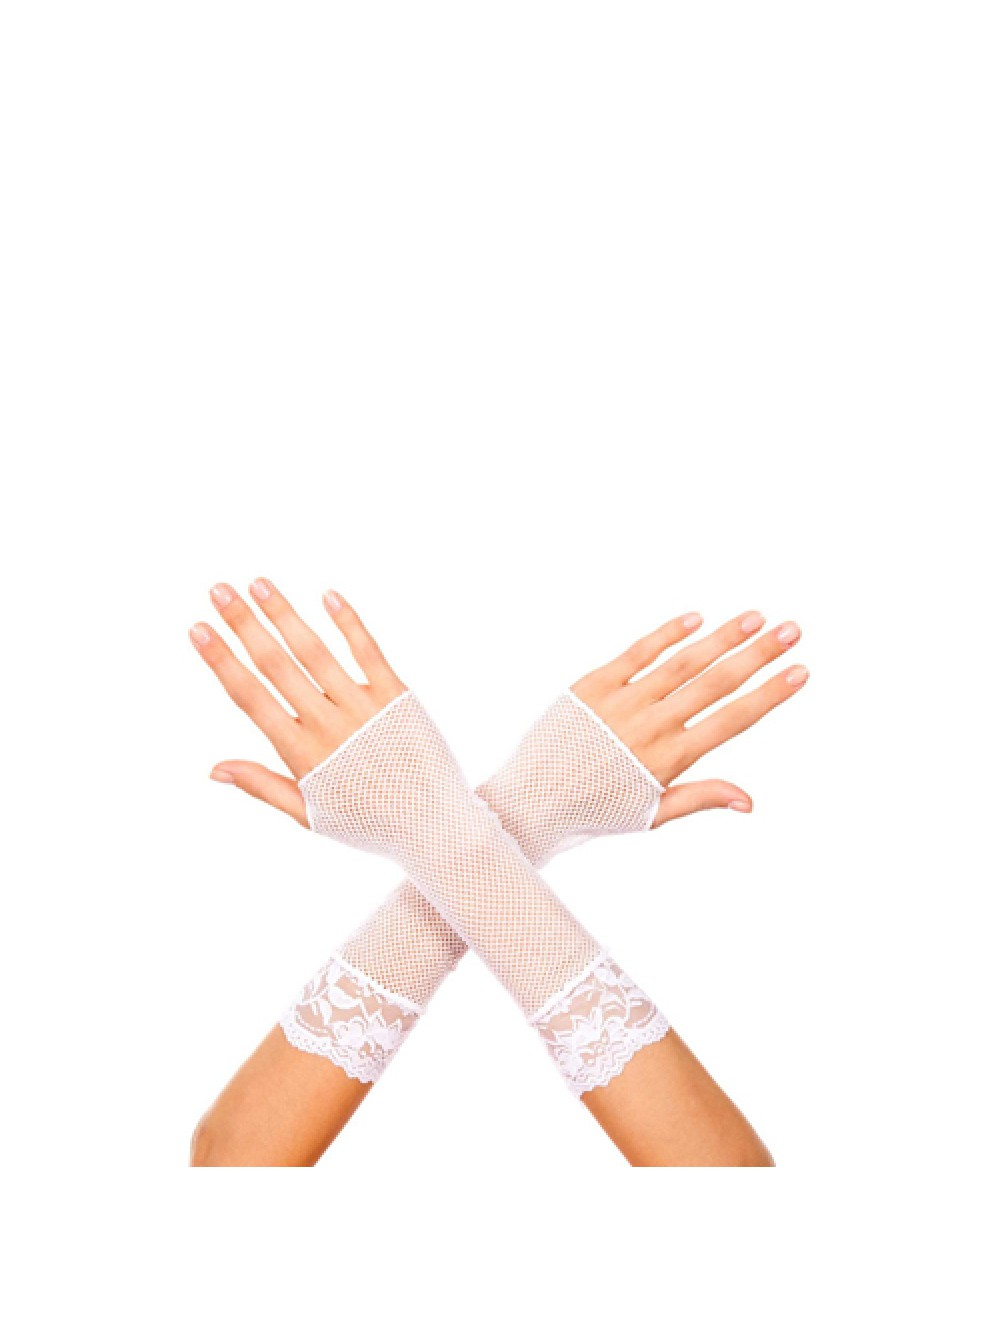 Short fishnet gloves with lace trim WHITE 4711168904210